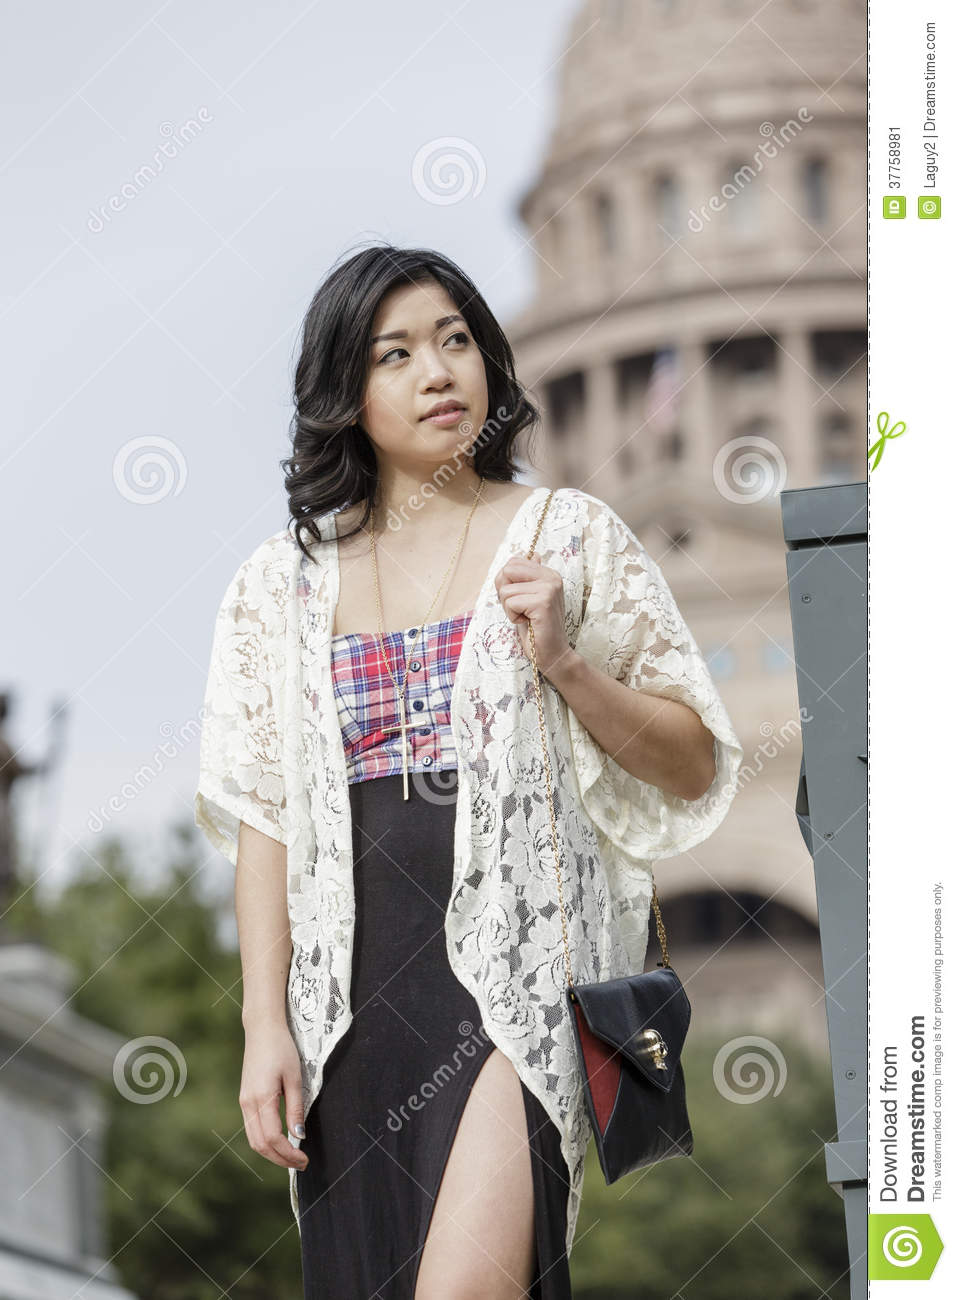 Asian Woman in lifestyle locations